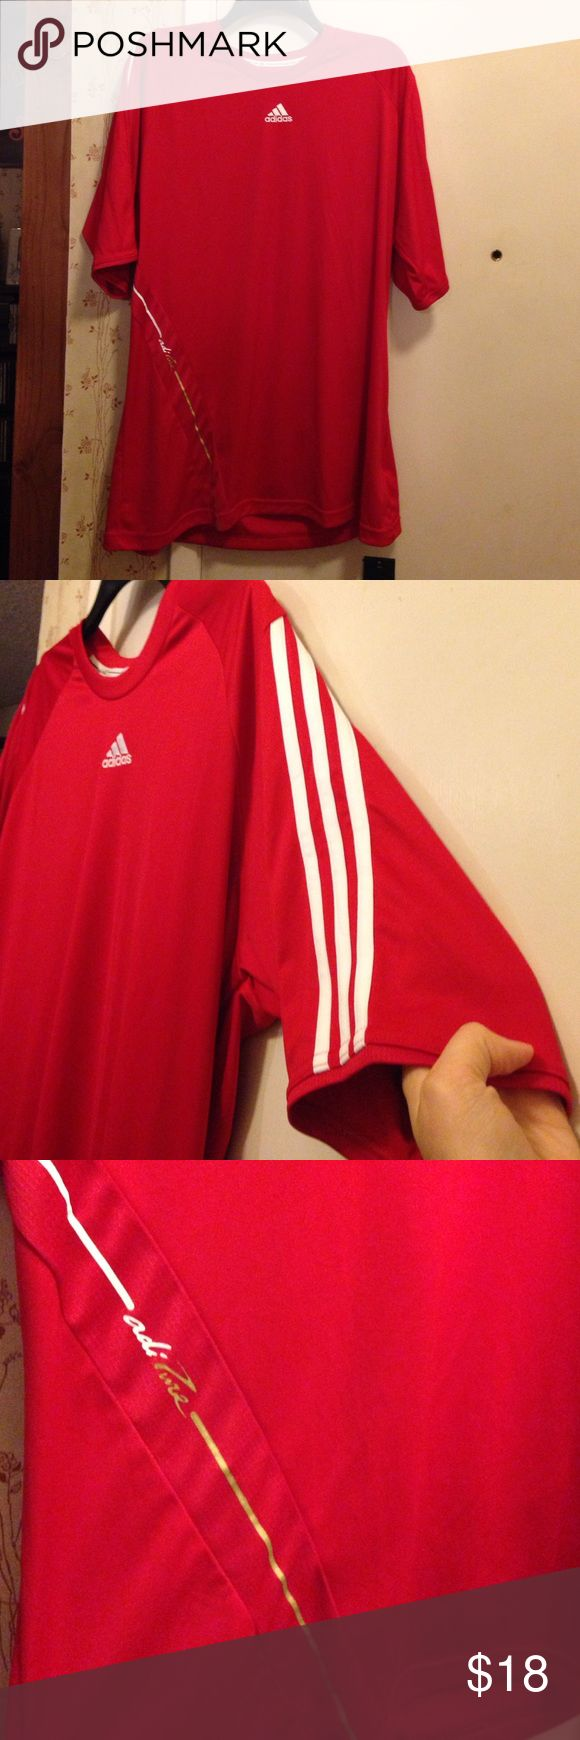 NWT Adidas Tee NWT Adidas short sleeve tee. Red with white stripes on one sleeve and white outline on the other. Size XL. No trades. Make offers! Adidas Shirts Tees - Short Sleeve